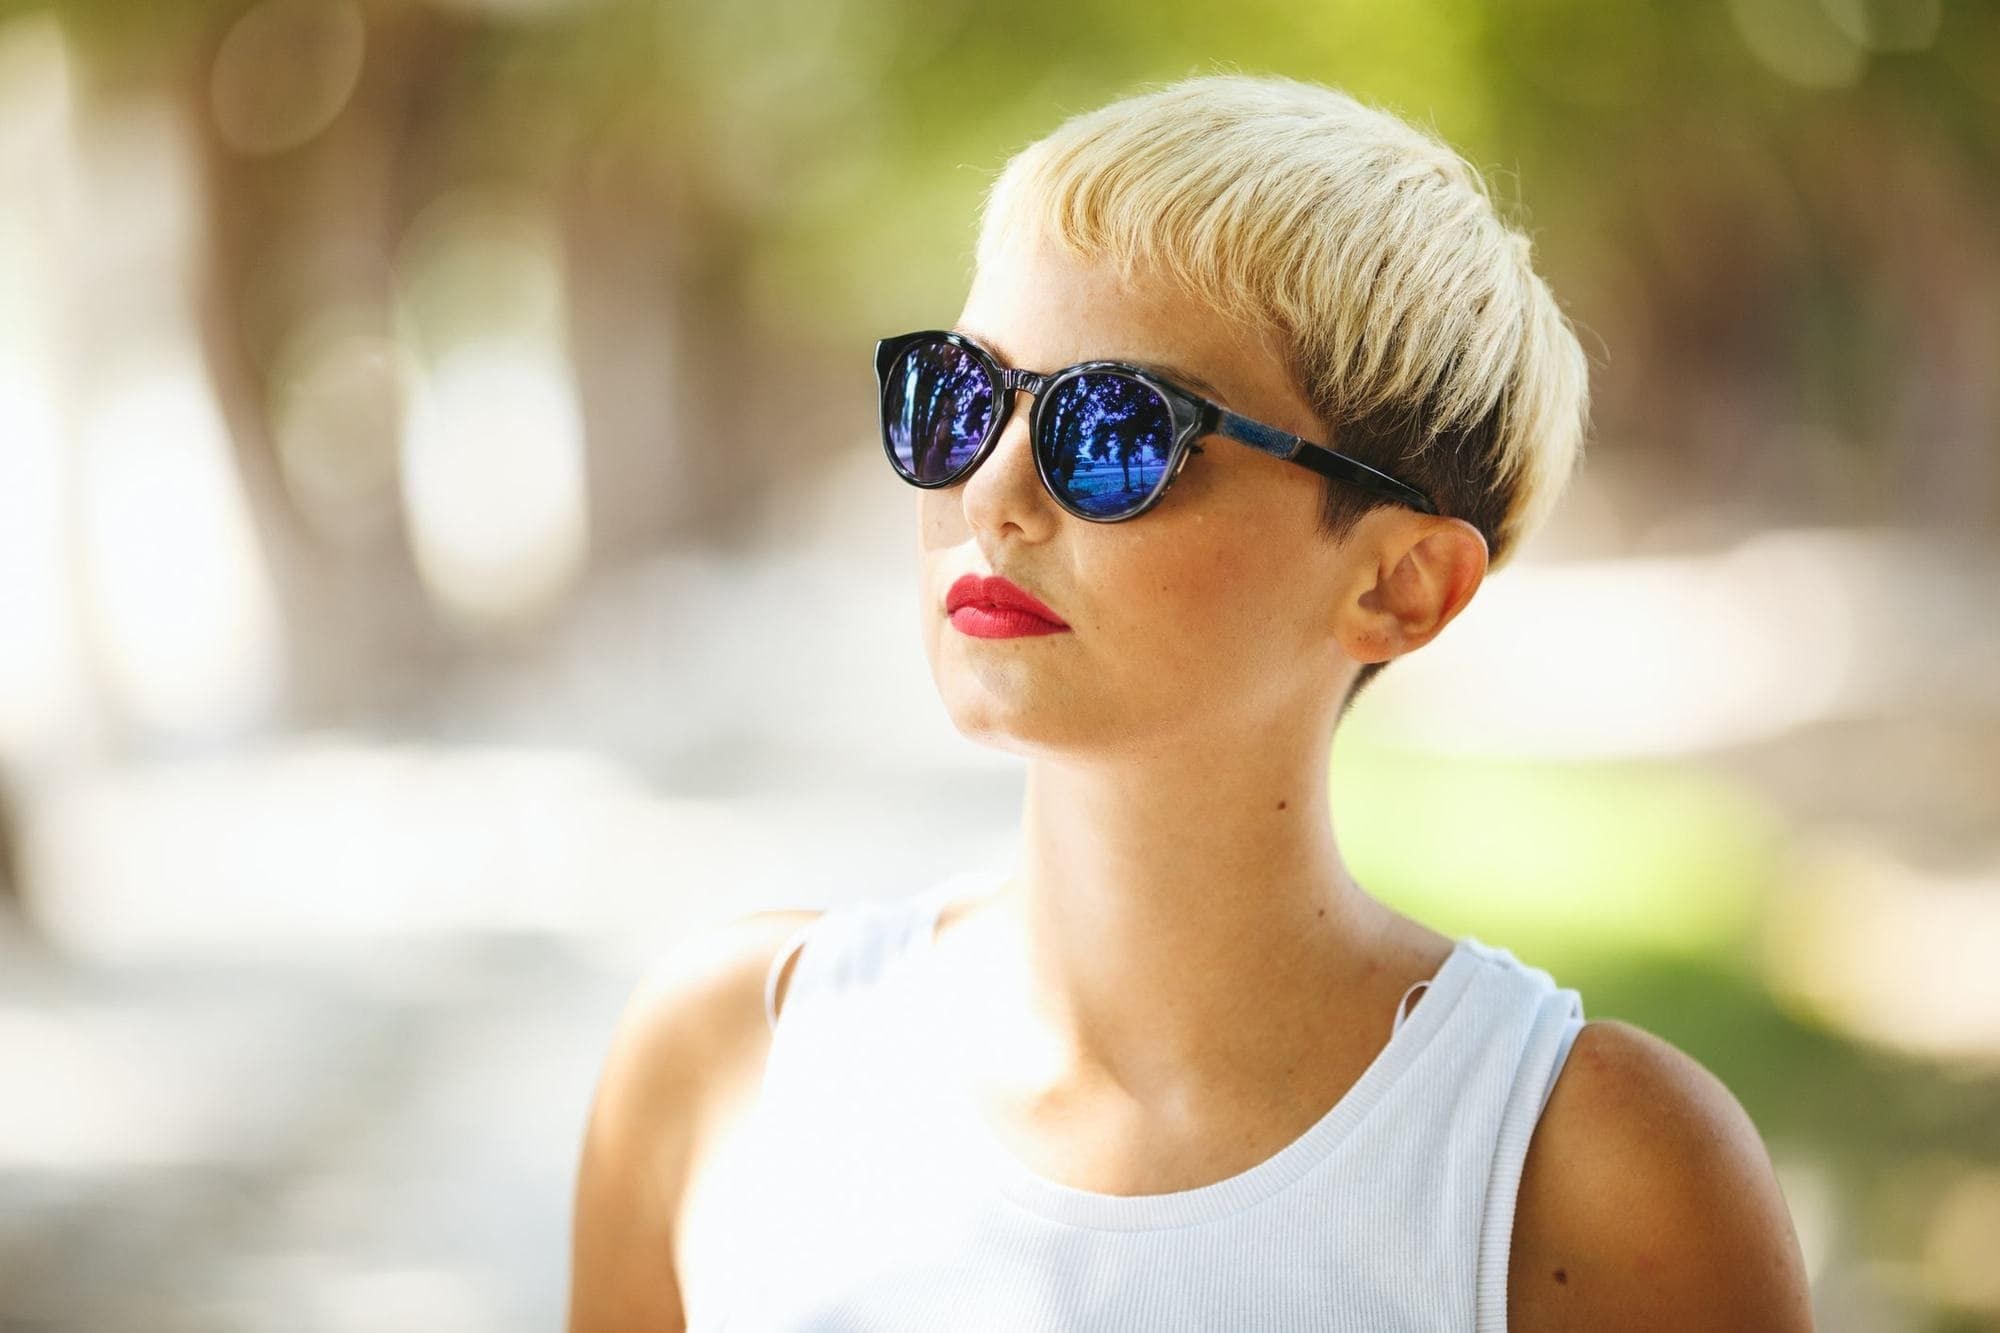 Check out long pixie haircut ideas to consider that will inspire